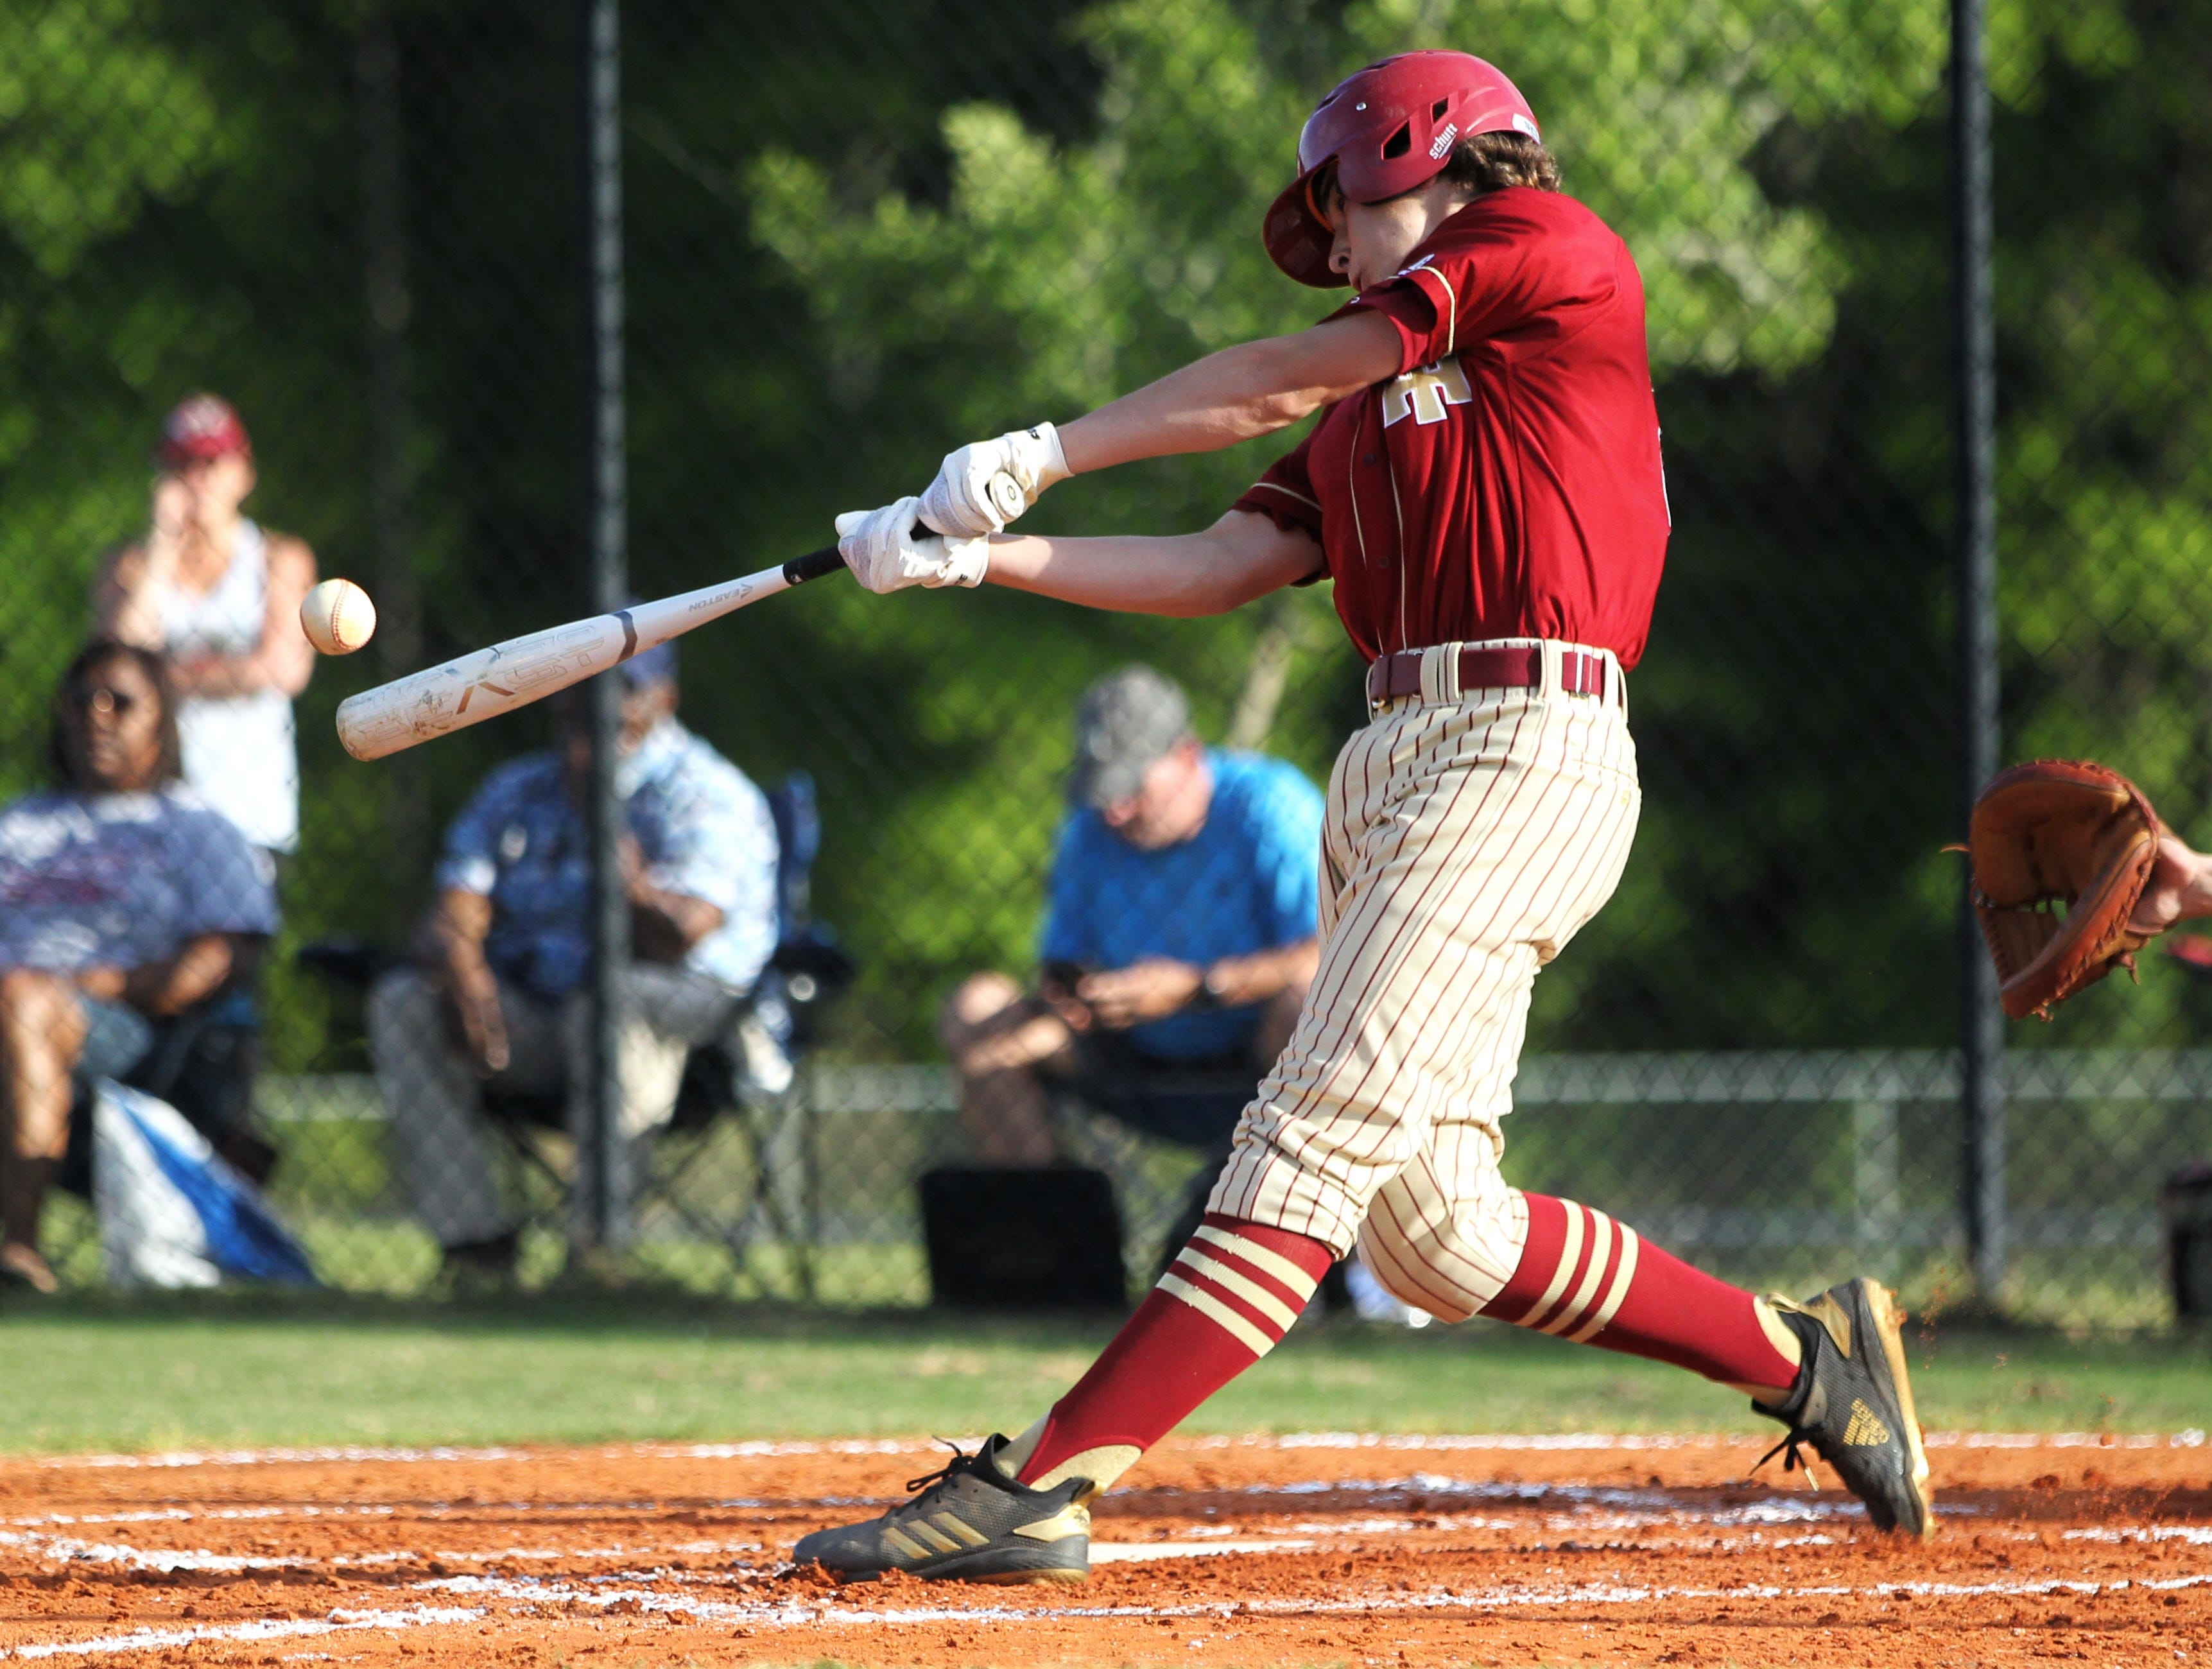 Florida High's Boone Hosey bats as Florida High won 11-3 on the road at St. John Paul II on Tuesday, April 3, 2010.